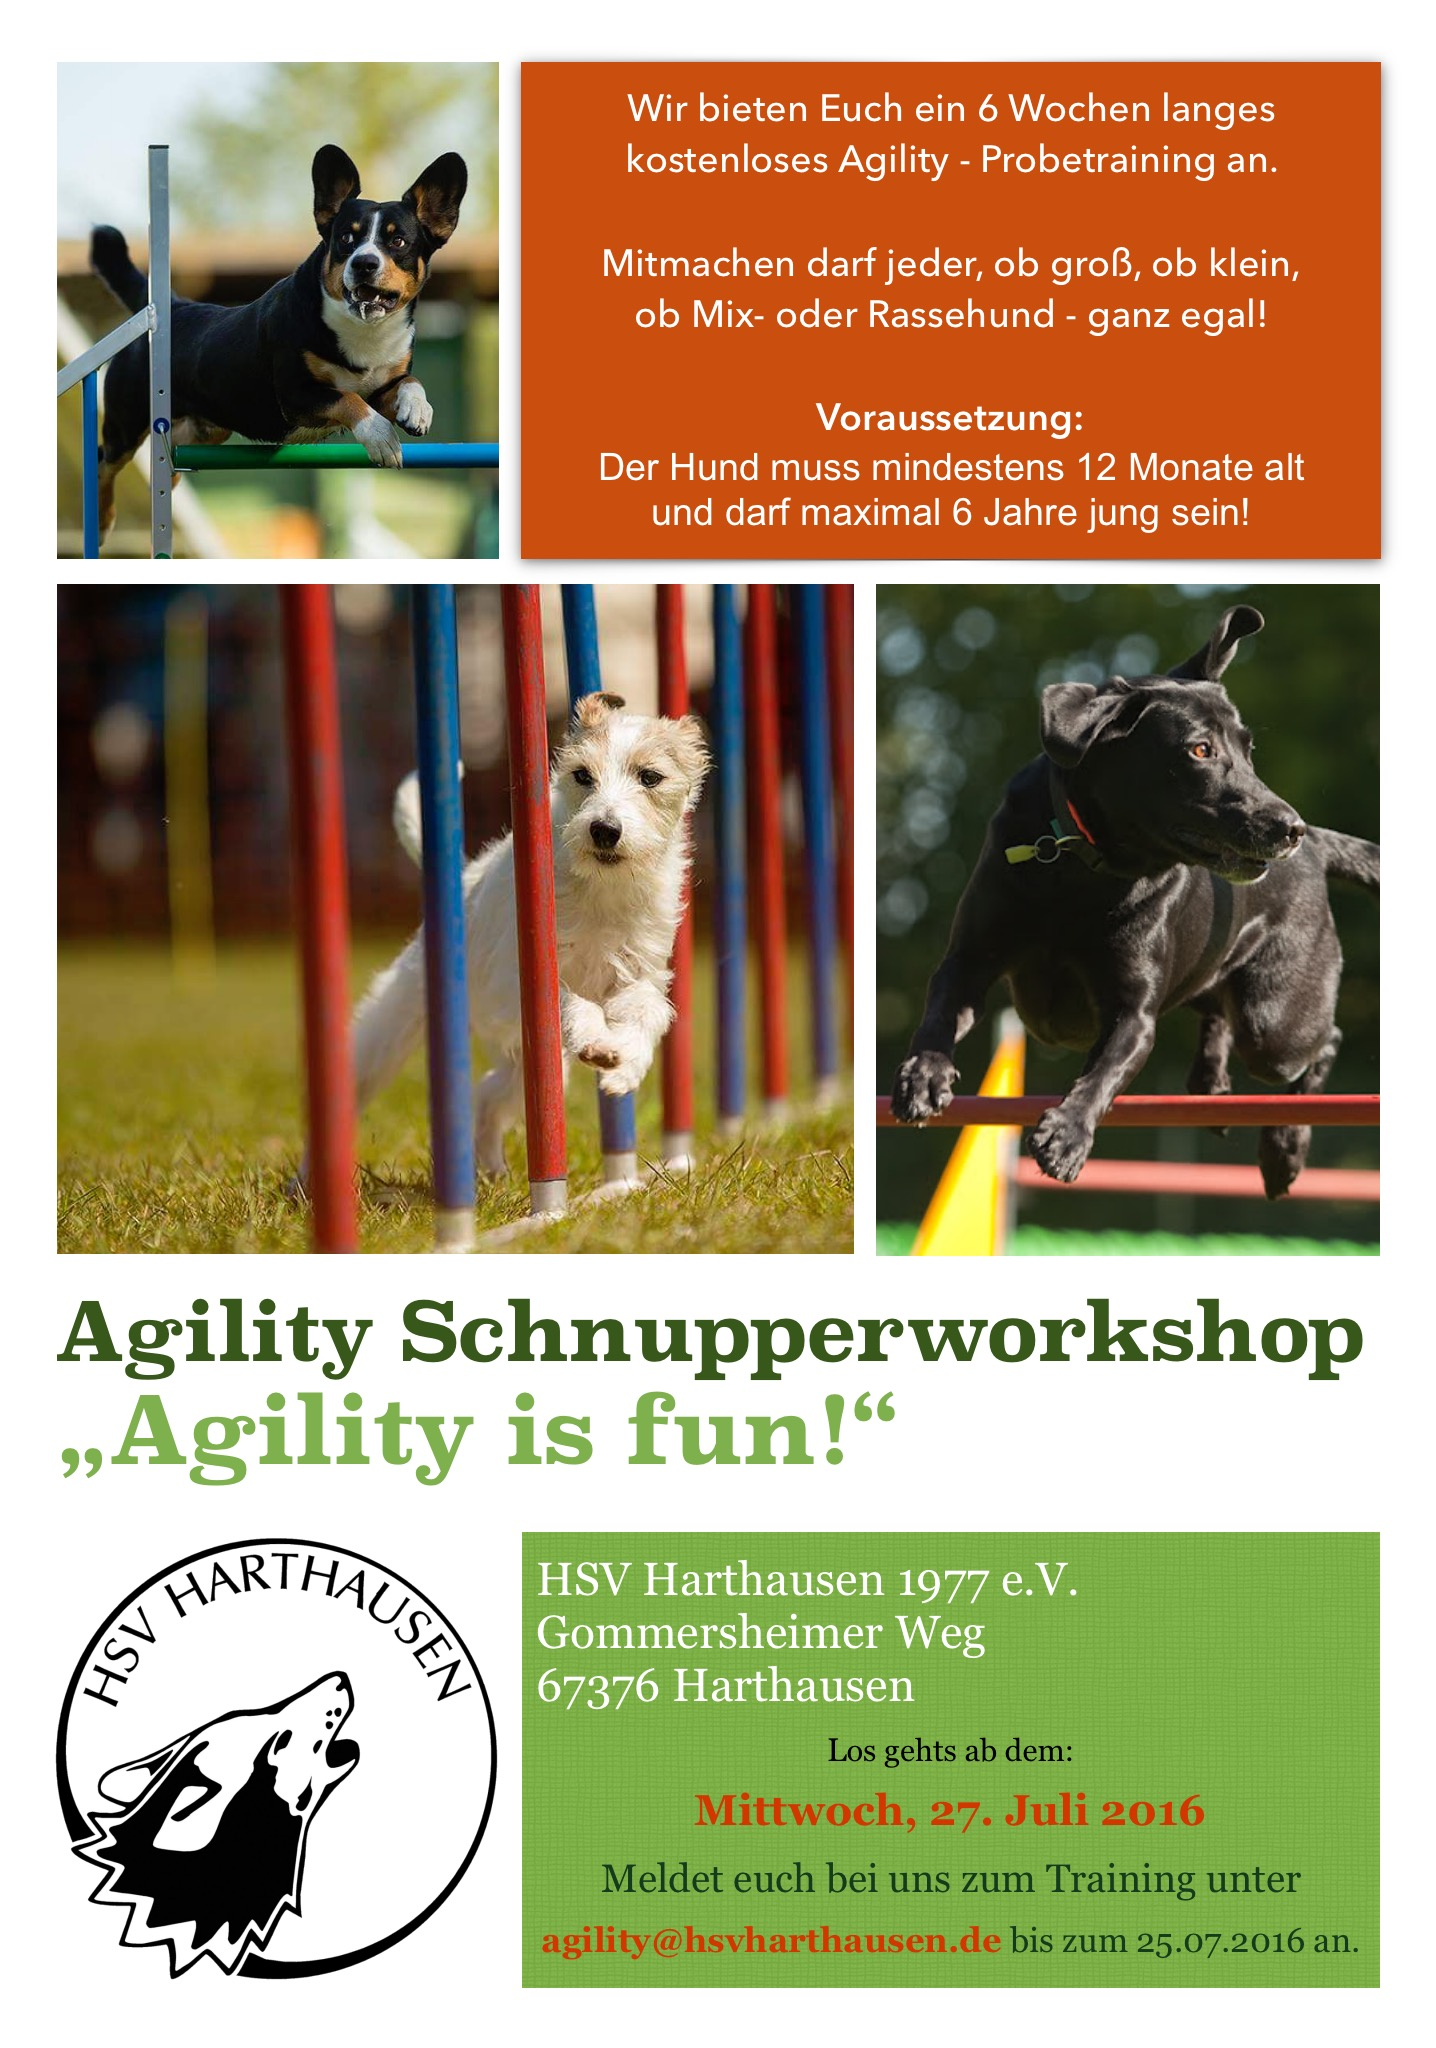 Schnupperworkshop